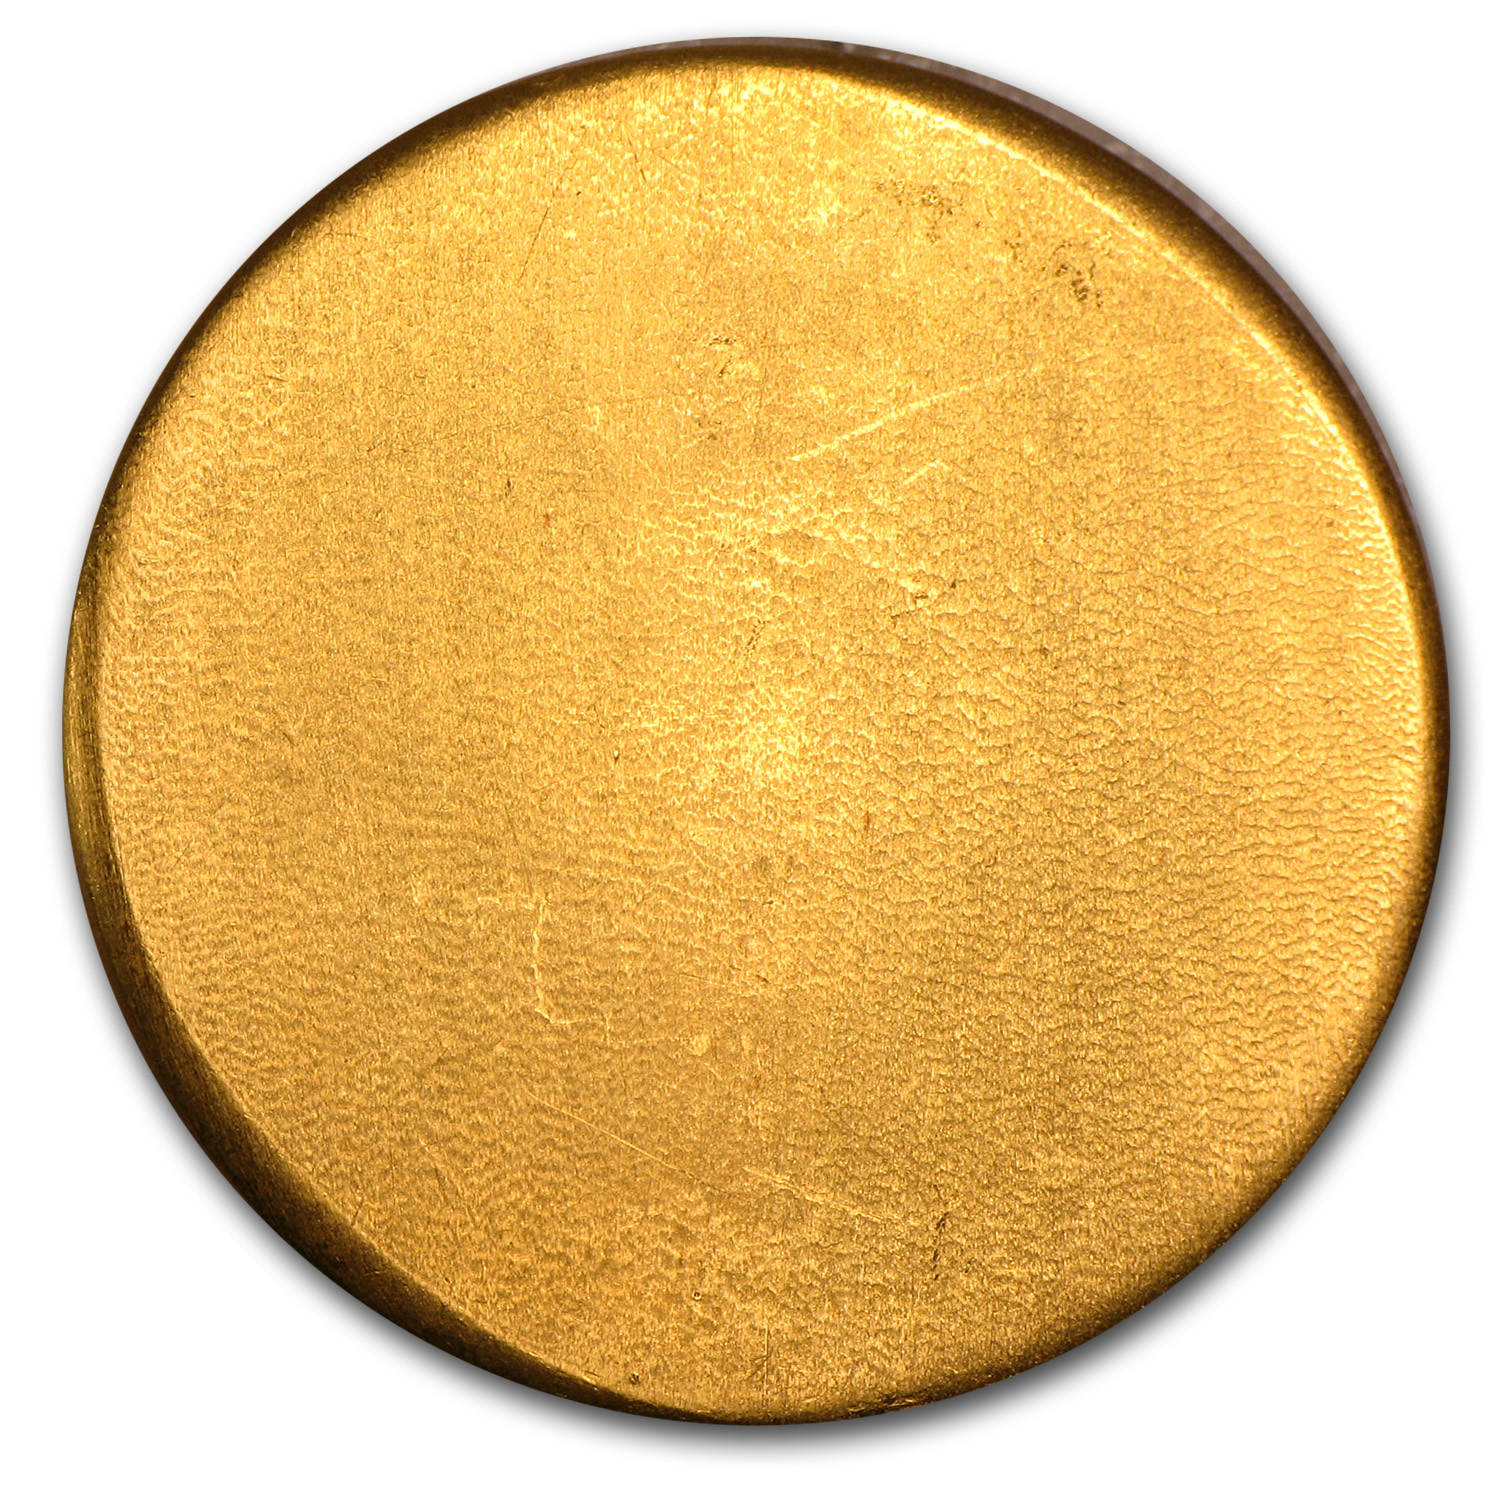 1 oz Gold Round - Hoover & Strong Gold Button